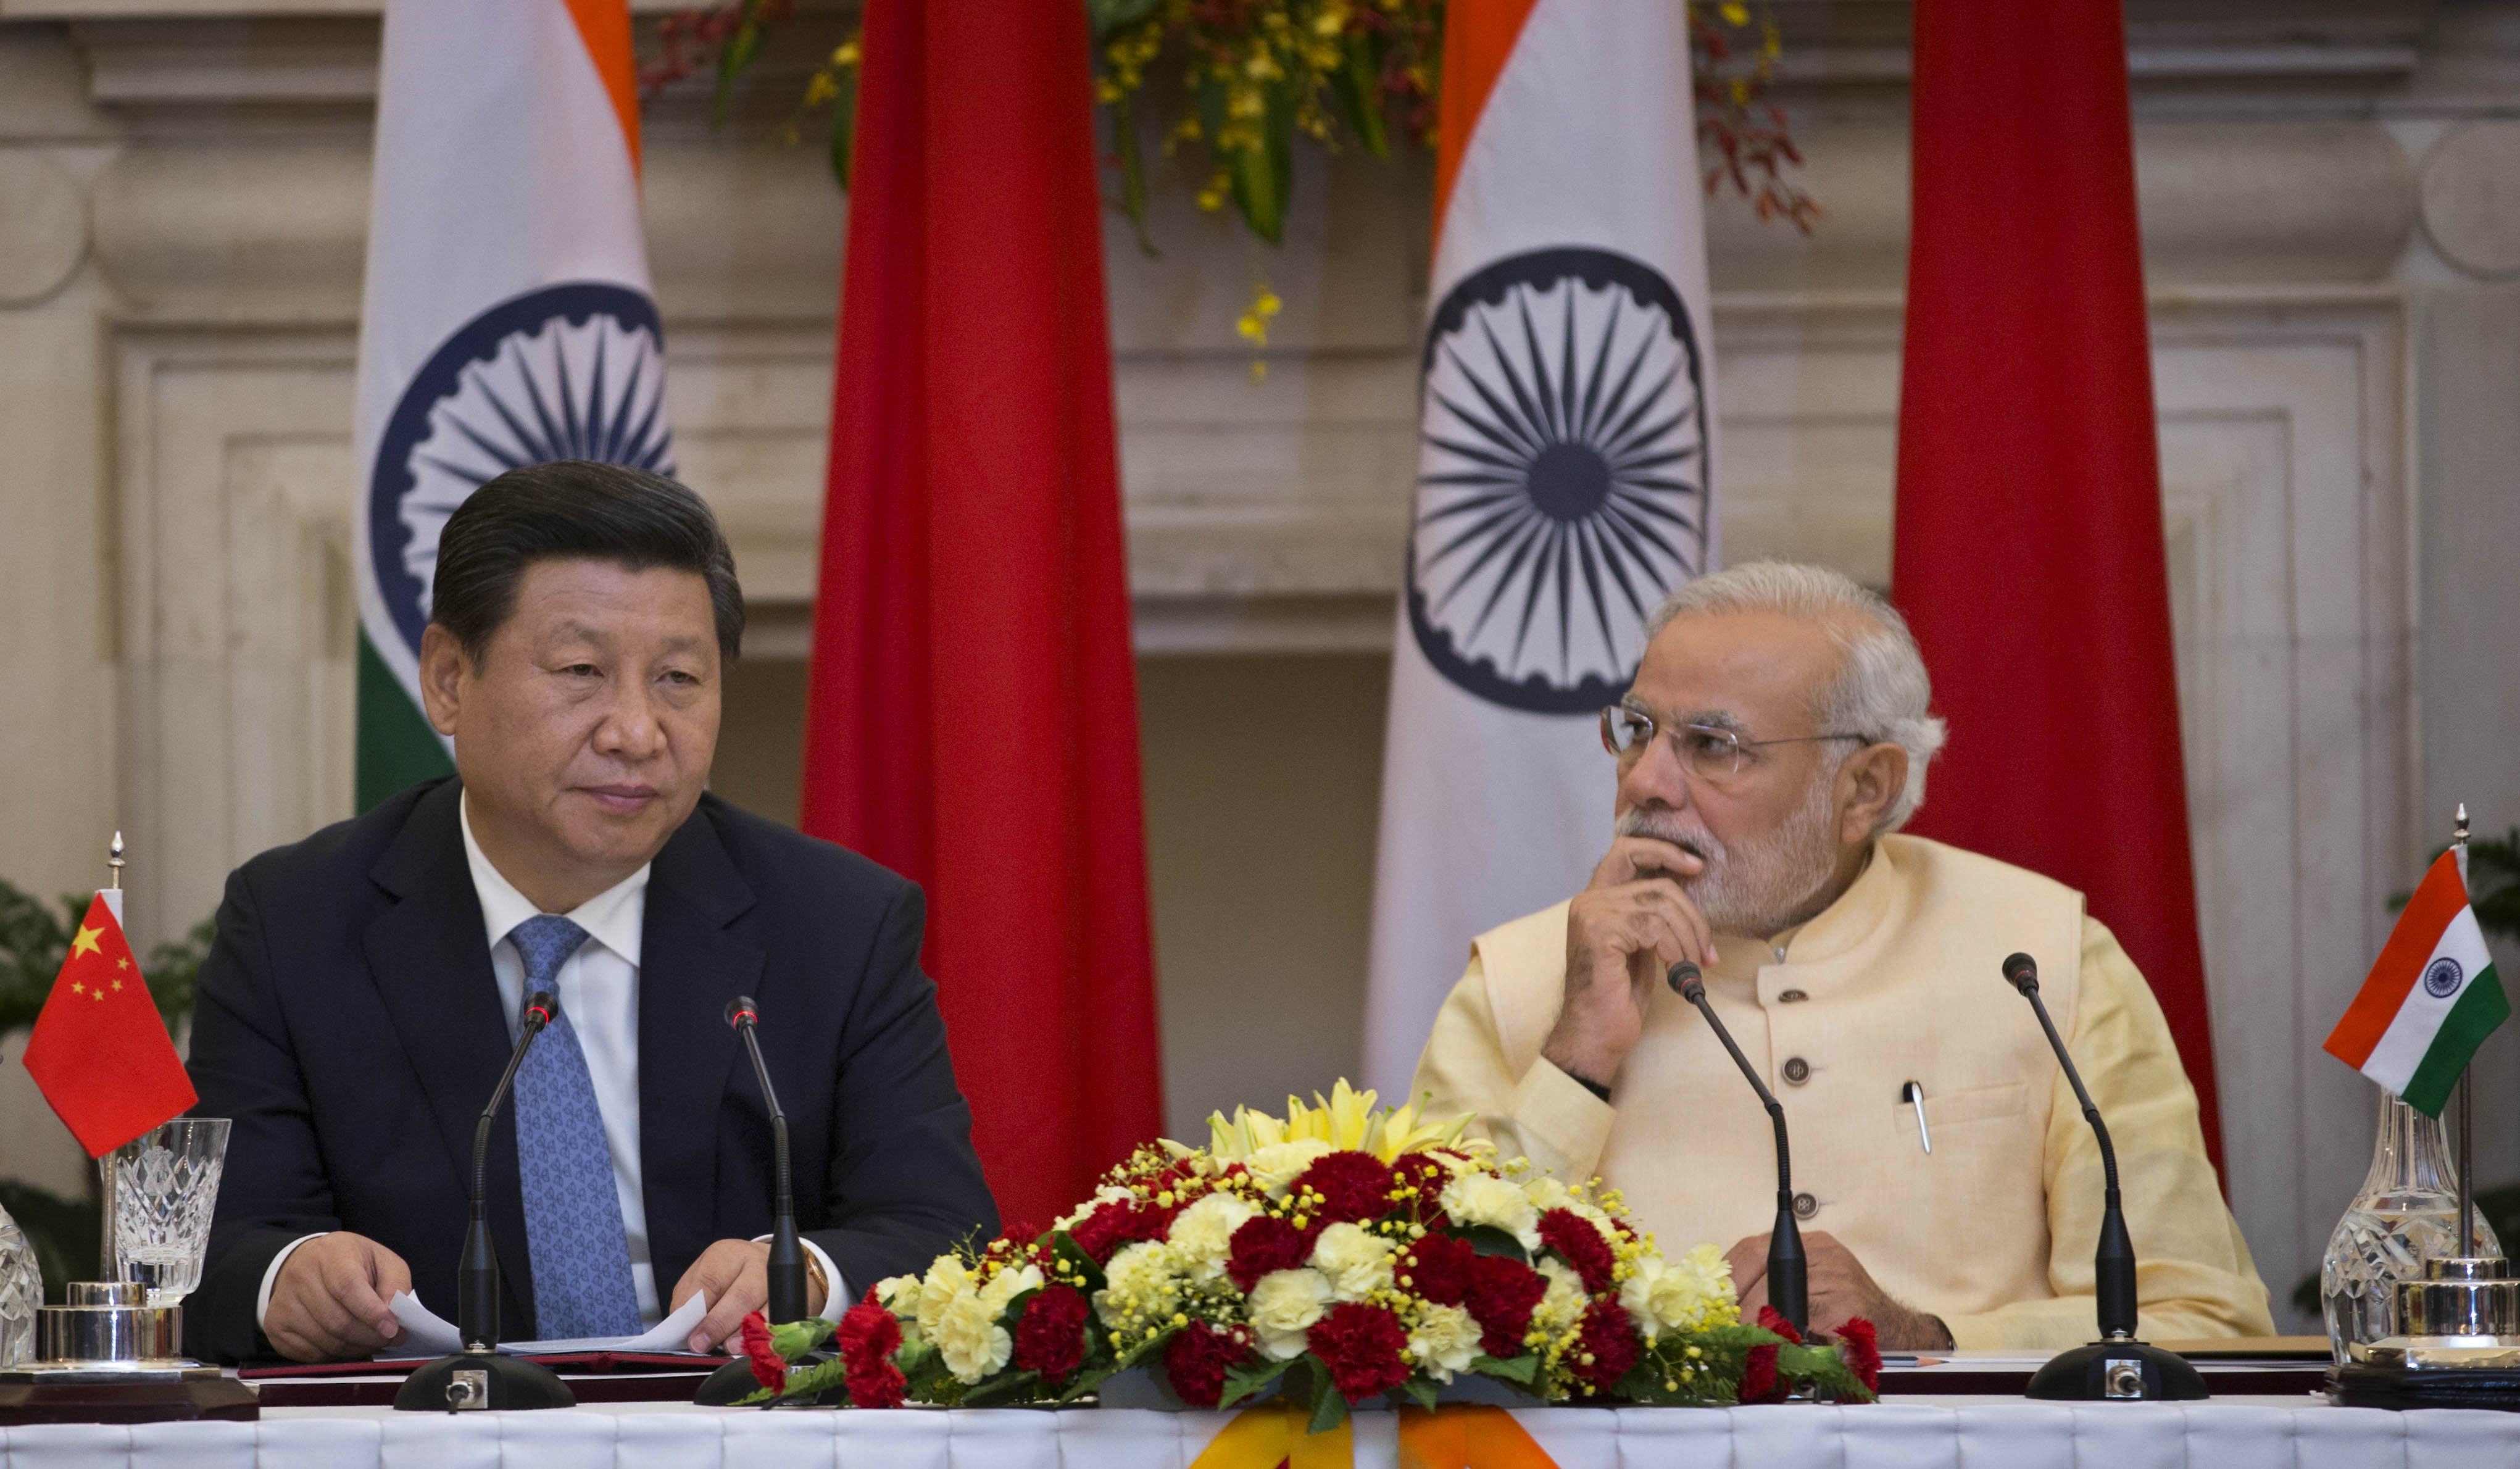 Chinese President Xi Jinping (L) makes a statement before the media as Indian Prime Minister Narendra Modi (R) watches after signing agreements in New Delhi, India on Sept. 18, 2014.